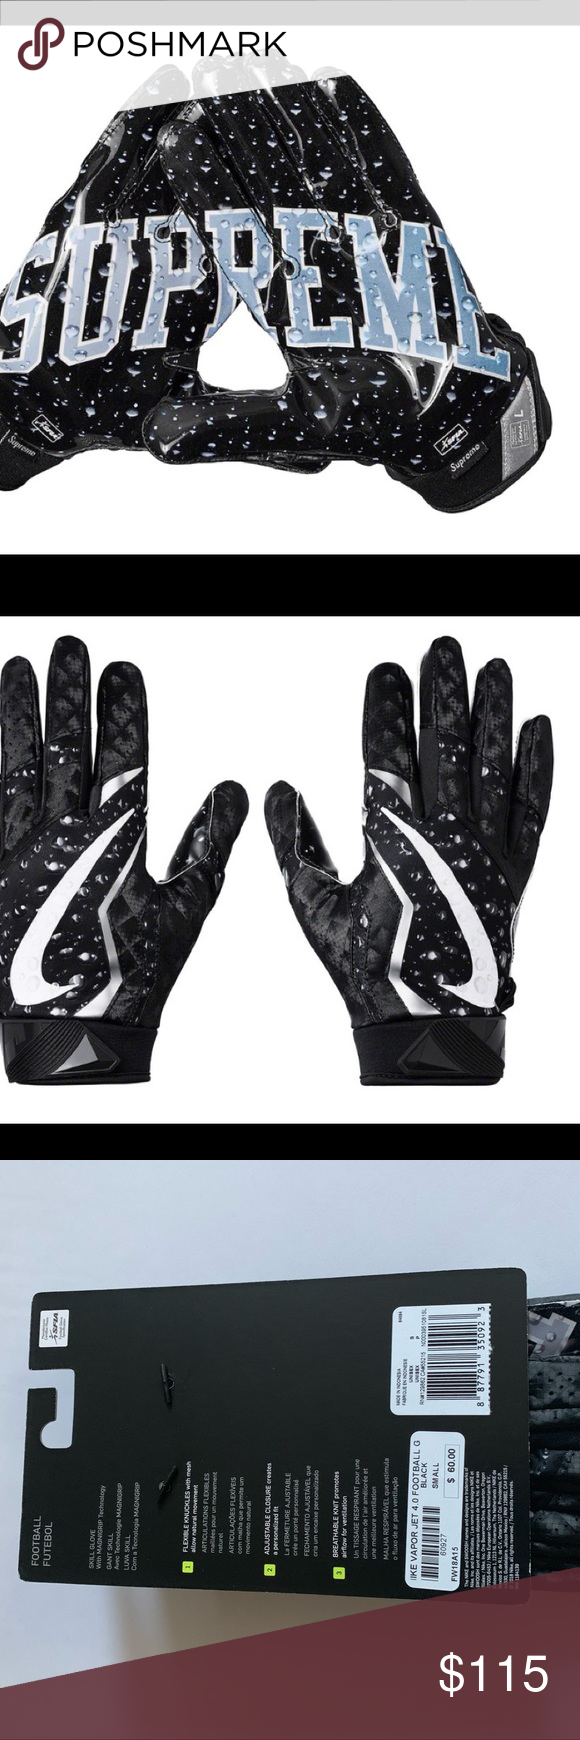 Supreme Nike Vapor Jet 4 0 Receiver Gloves Small New Nwt Brand New 100 Authentic Bought From Supreme Supreme Accessories Clothes Design Fashion Design